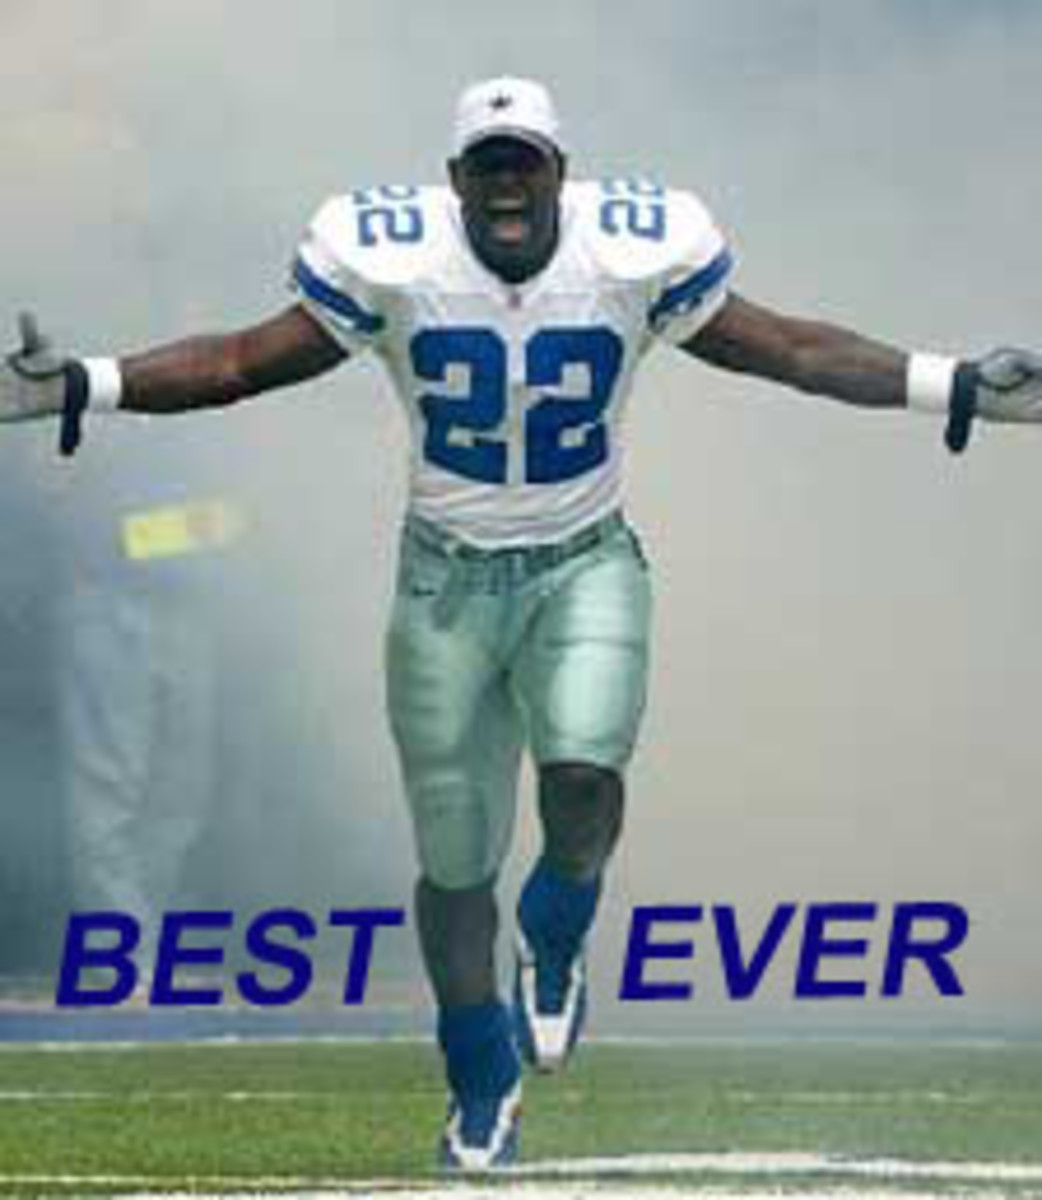 Dallas Cowboys #22 Emmitt Smith